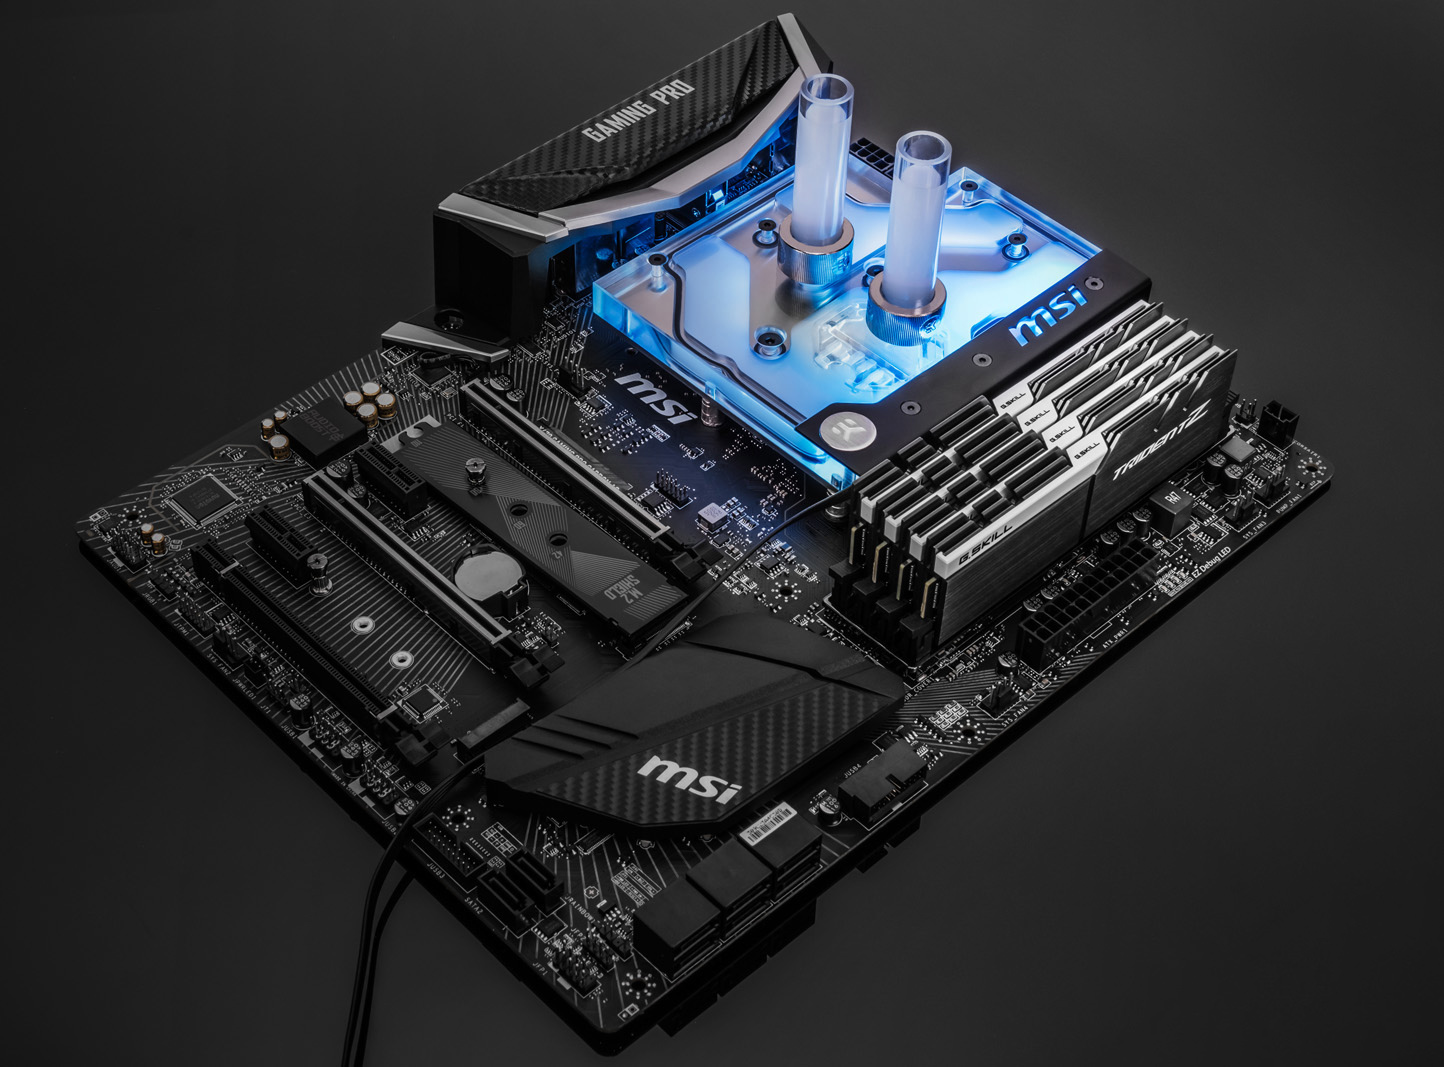 EK Releases New Monoblock for AM4 MSI & ASRock Motherboards